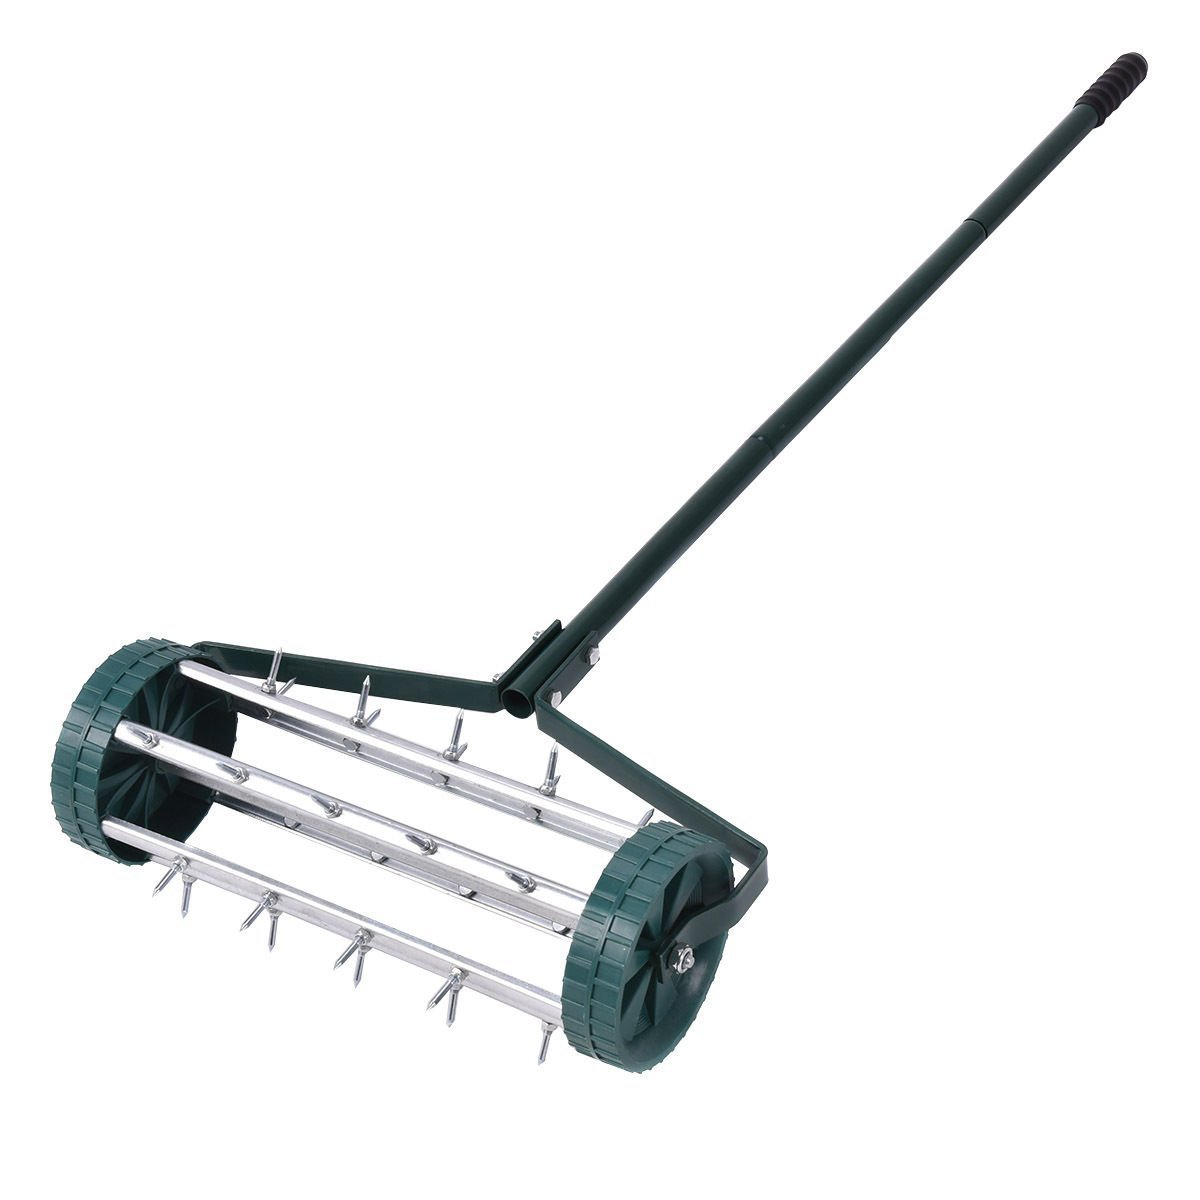 MTB Heavy Duty 18 Inch Aerator Roller Rolling Lawn Garden Spike Lawn Aerator Home Grass Steel Handle Green Quick and Easy to Assemble by MTB Supply